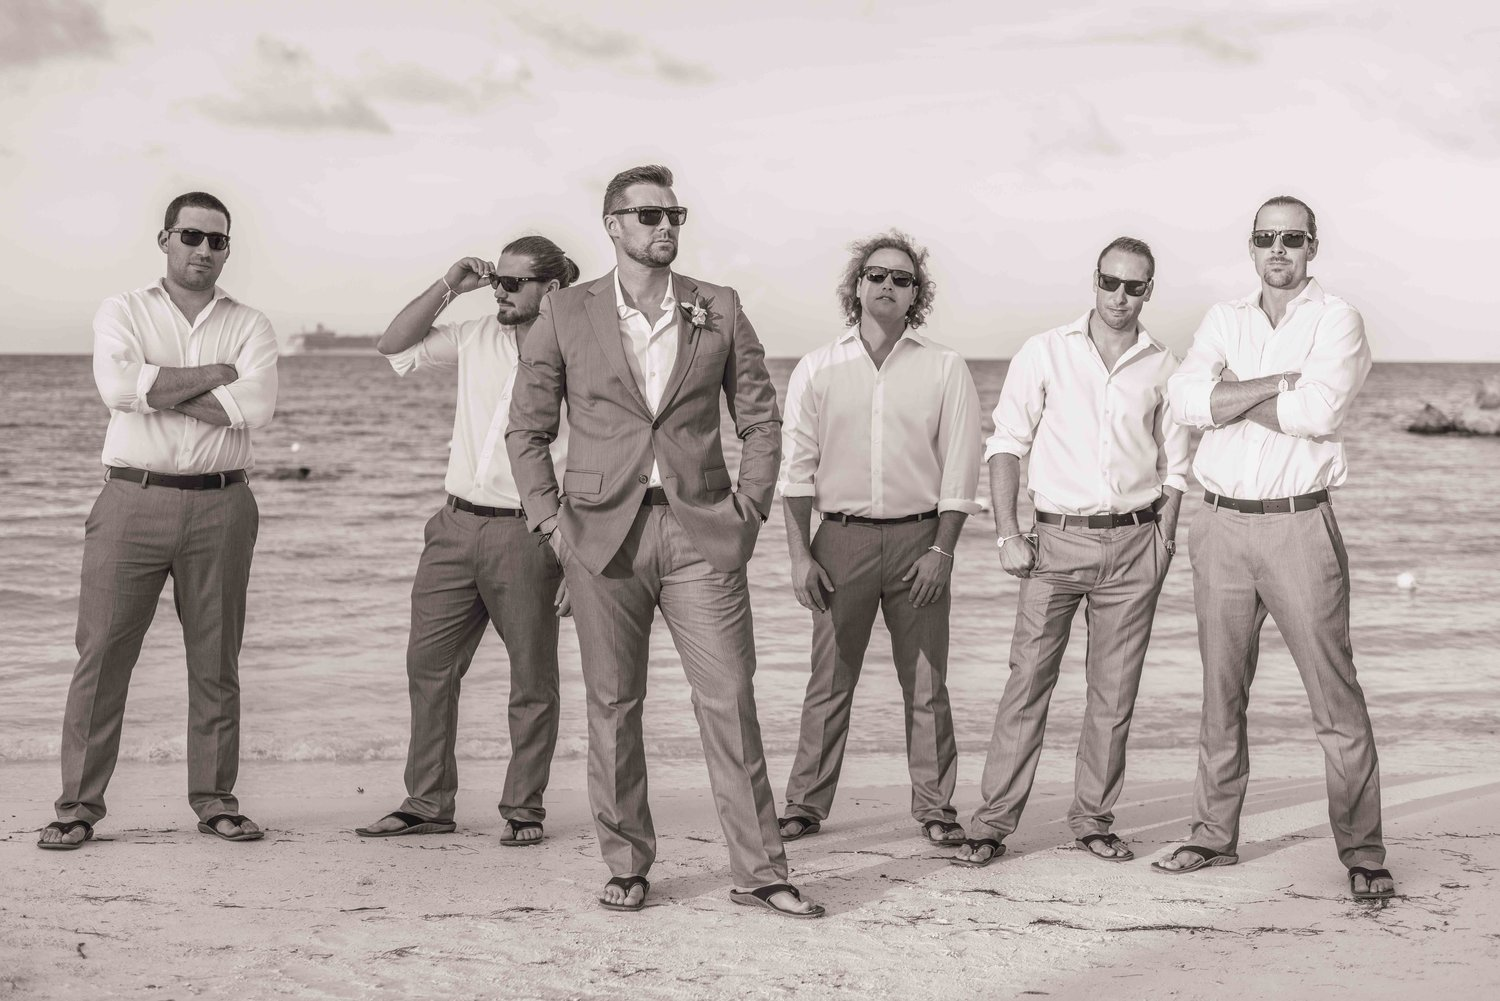 Groomsmen on a beach.